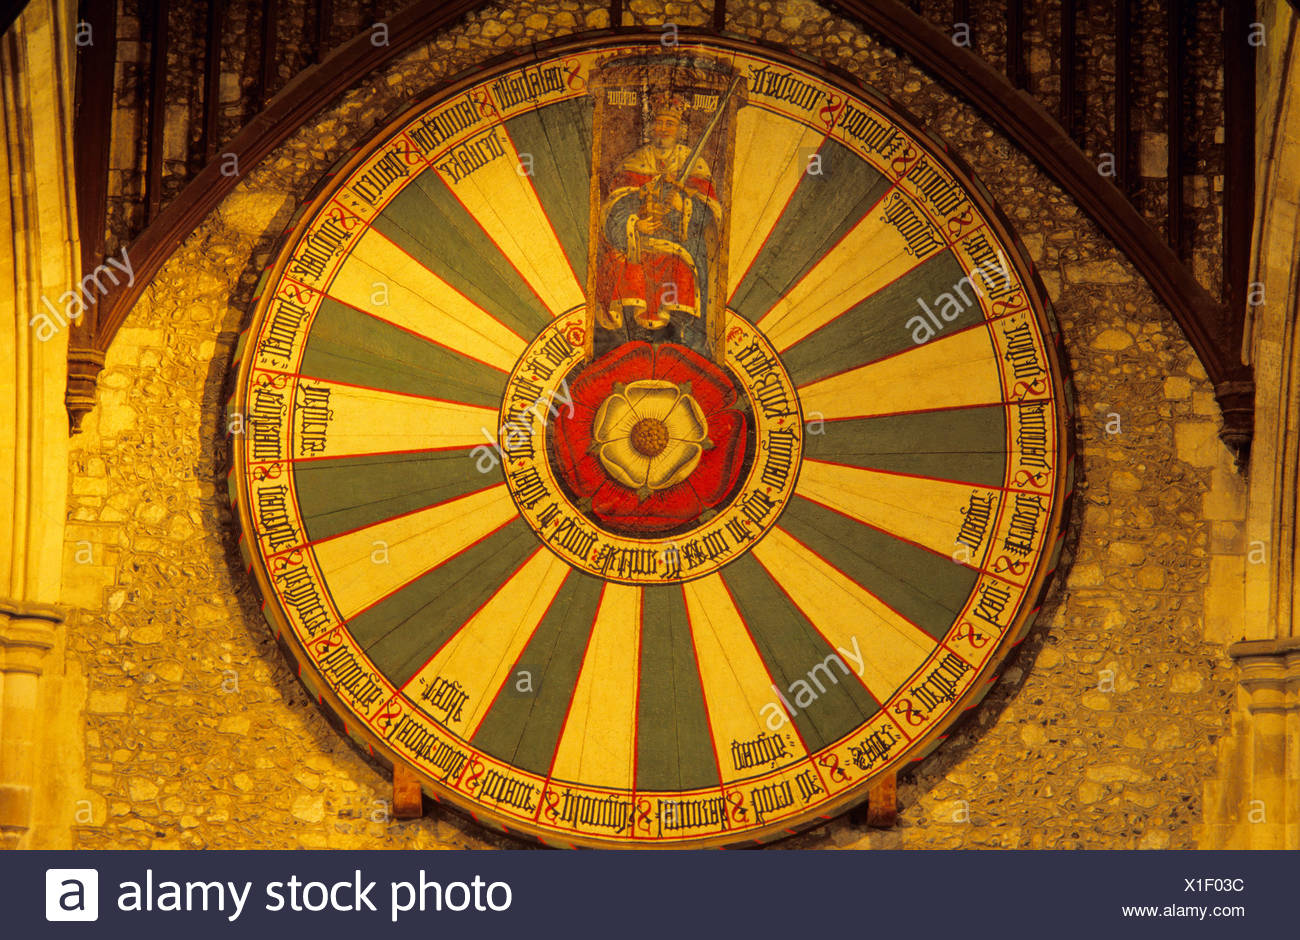 Knight of the round table stock photos knight of the round table stock images alamy - Round table winchester cathedral ...